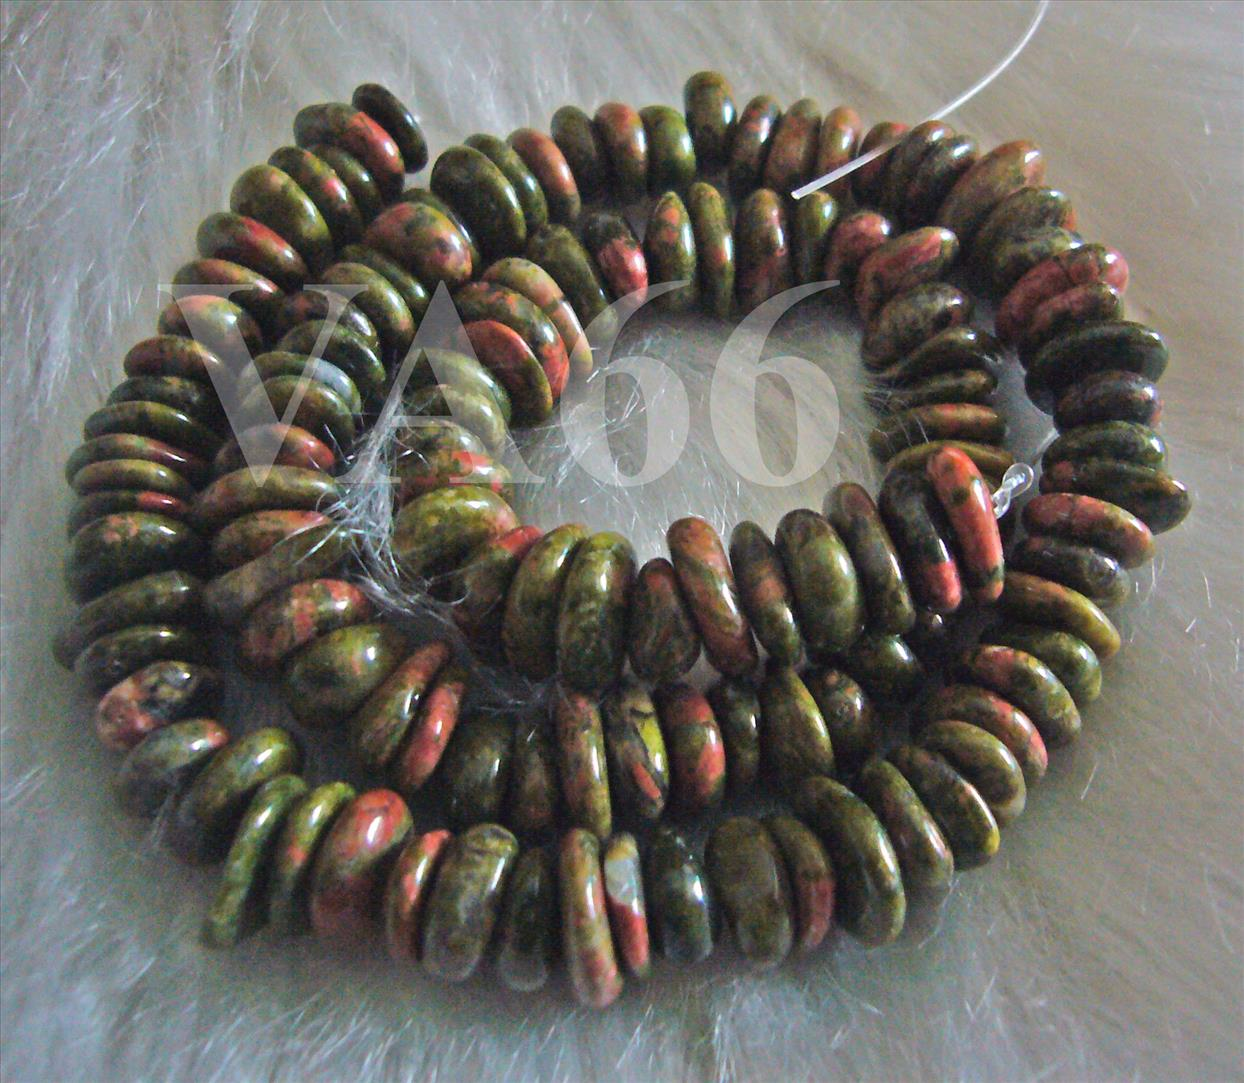 tumbled africa represent unakite typical south gemstone pictures stones healing quality